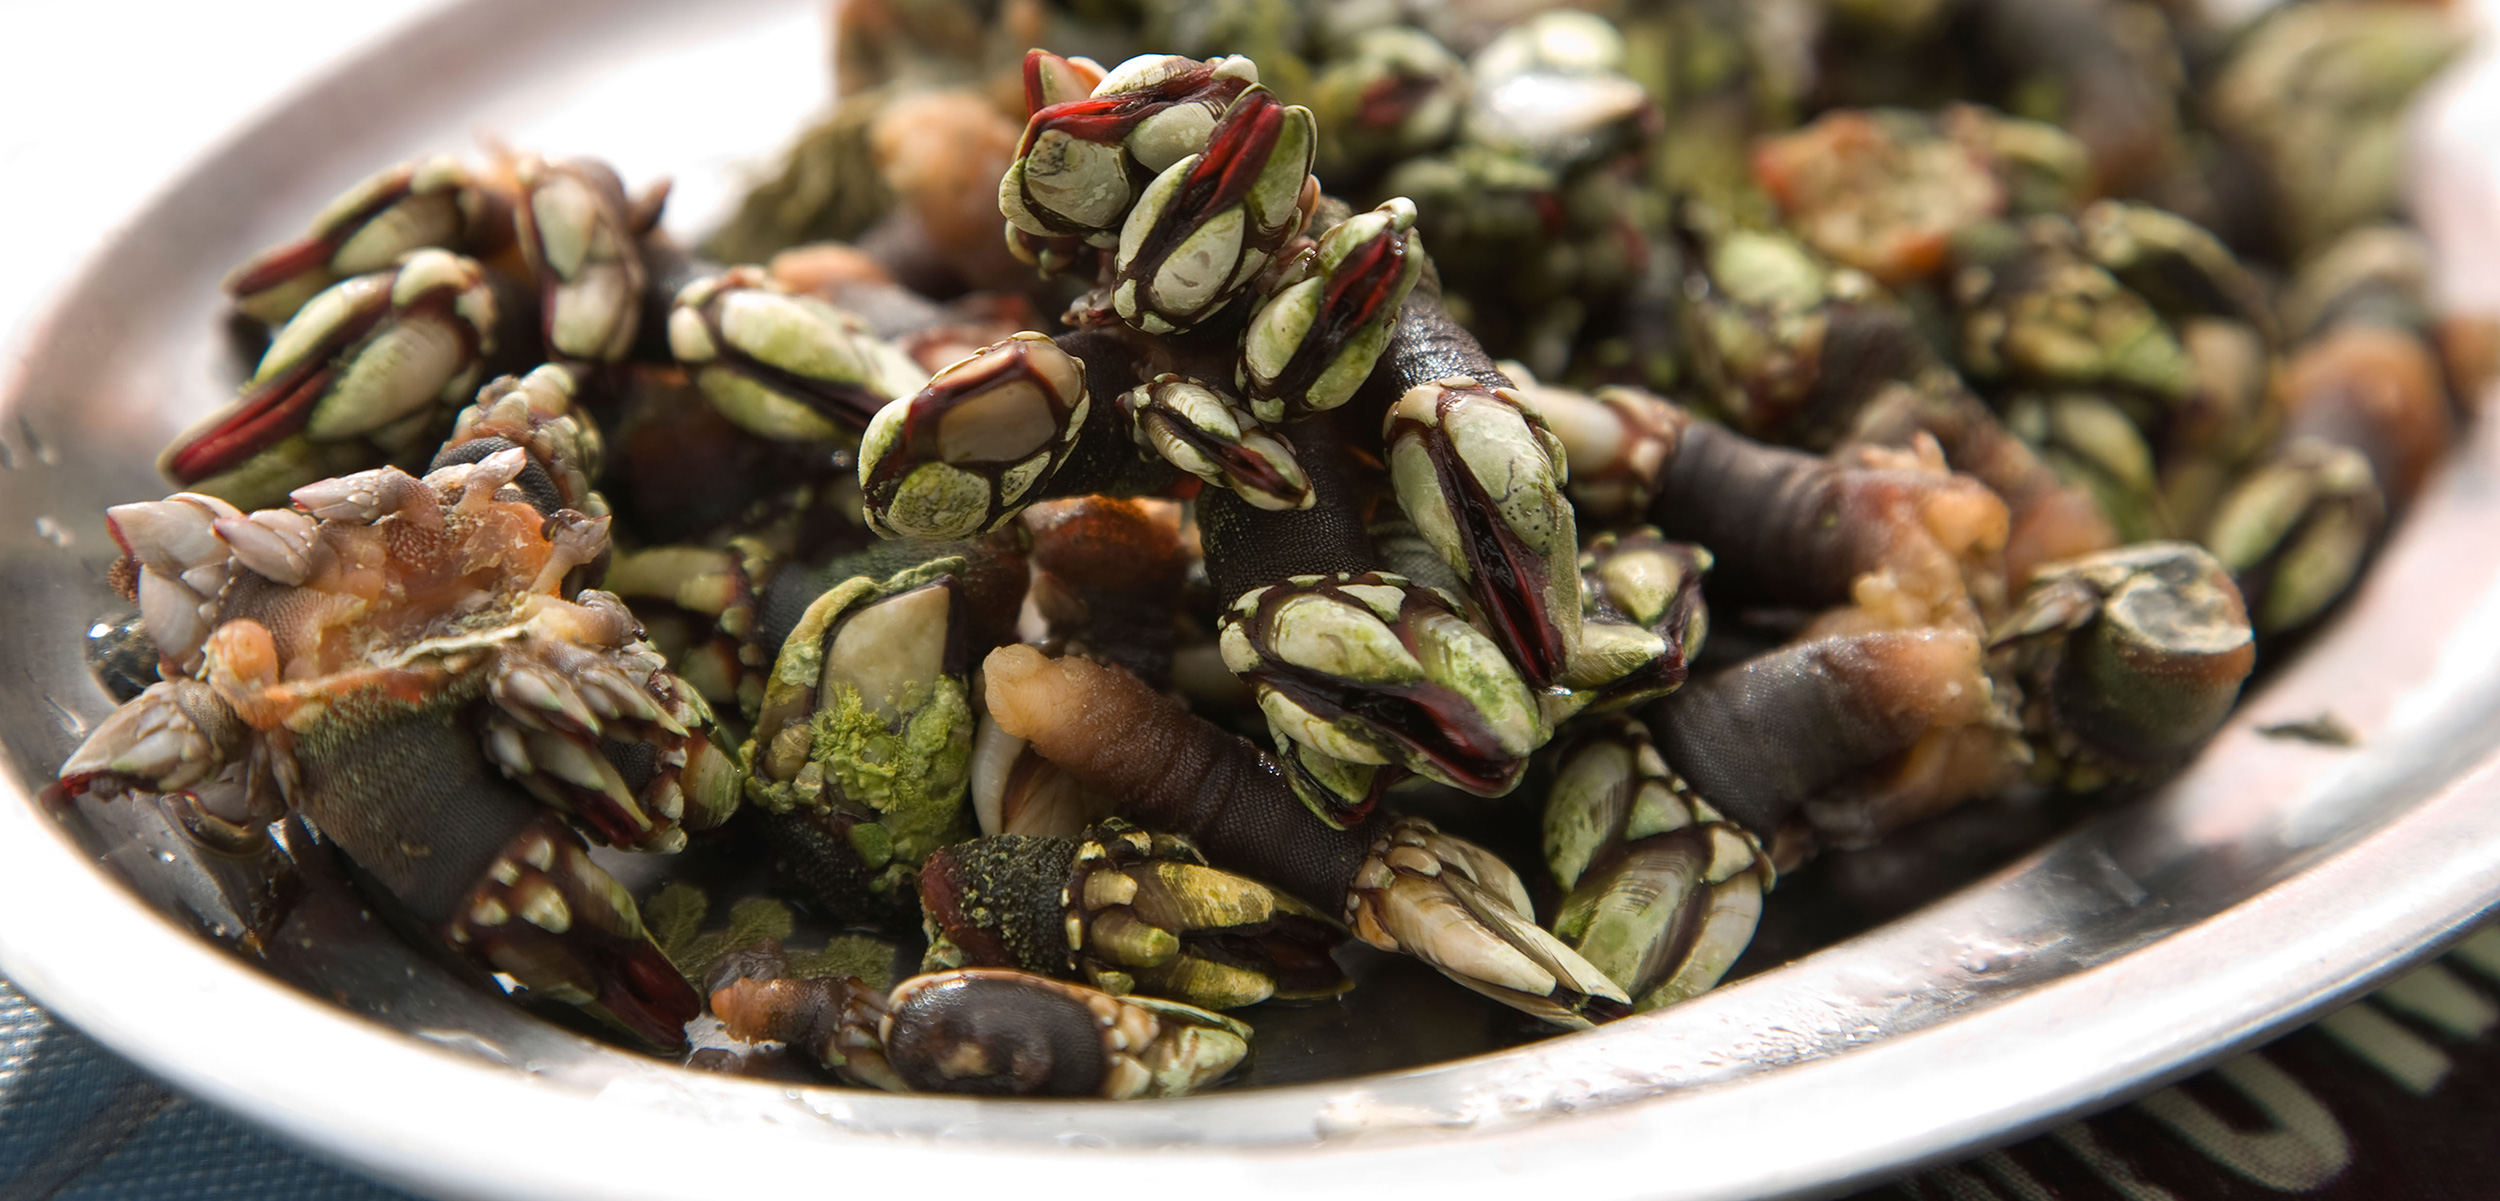 a plate of percebes or gooseneck barnacles